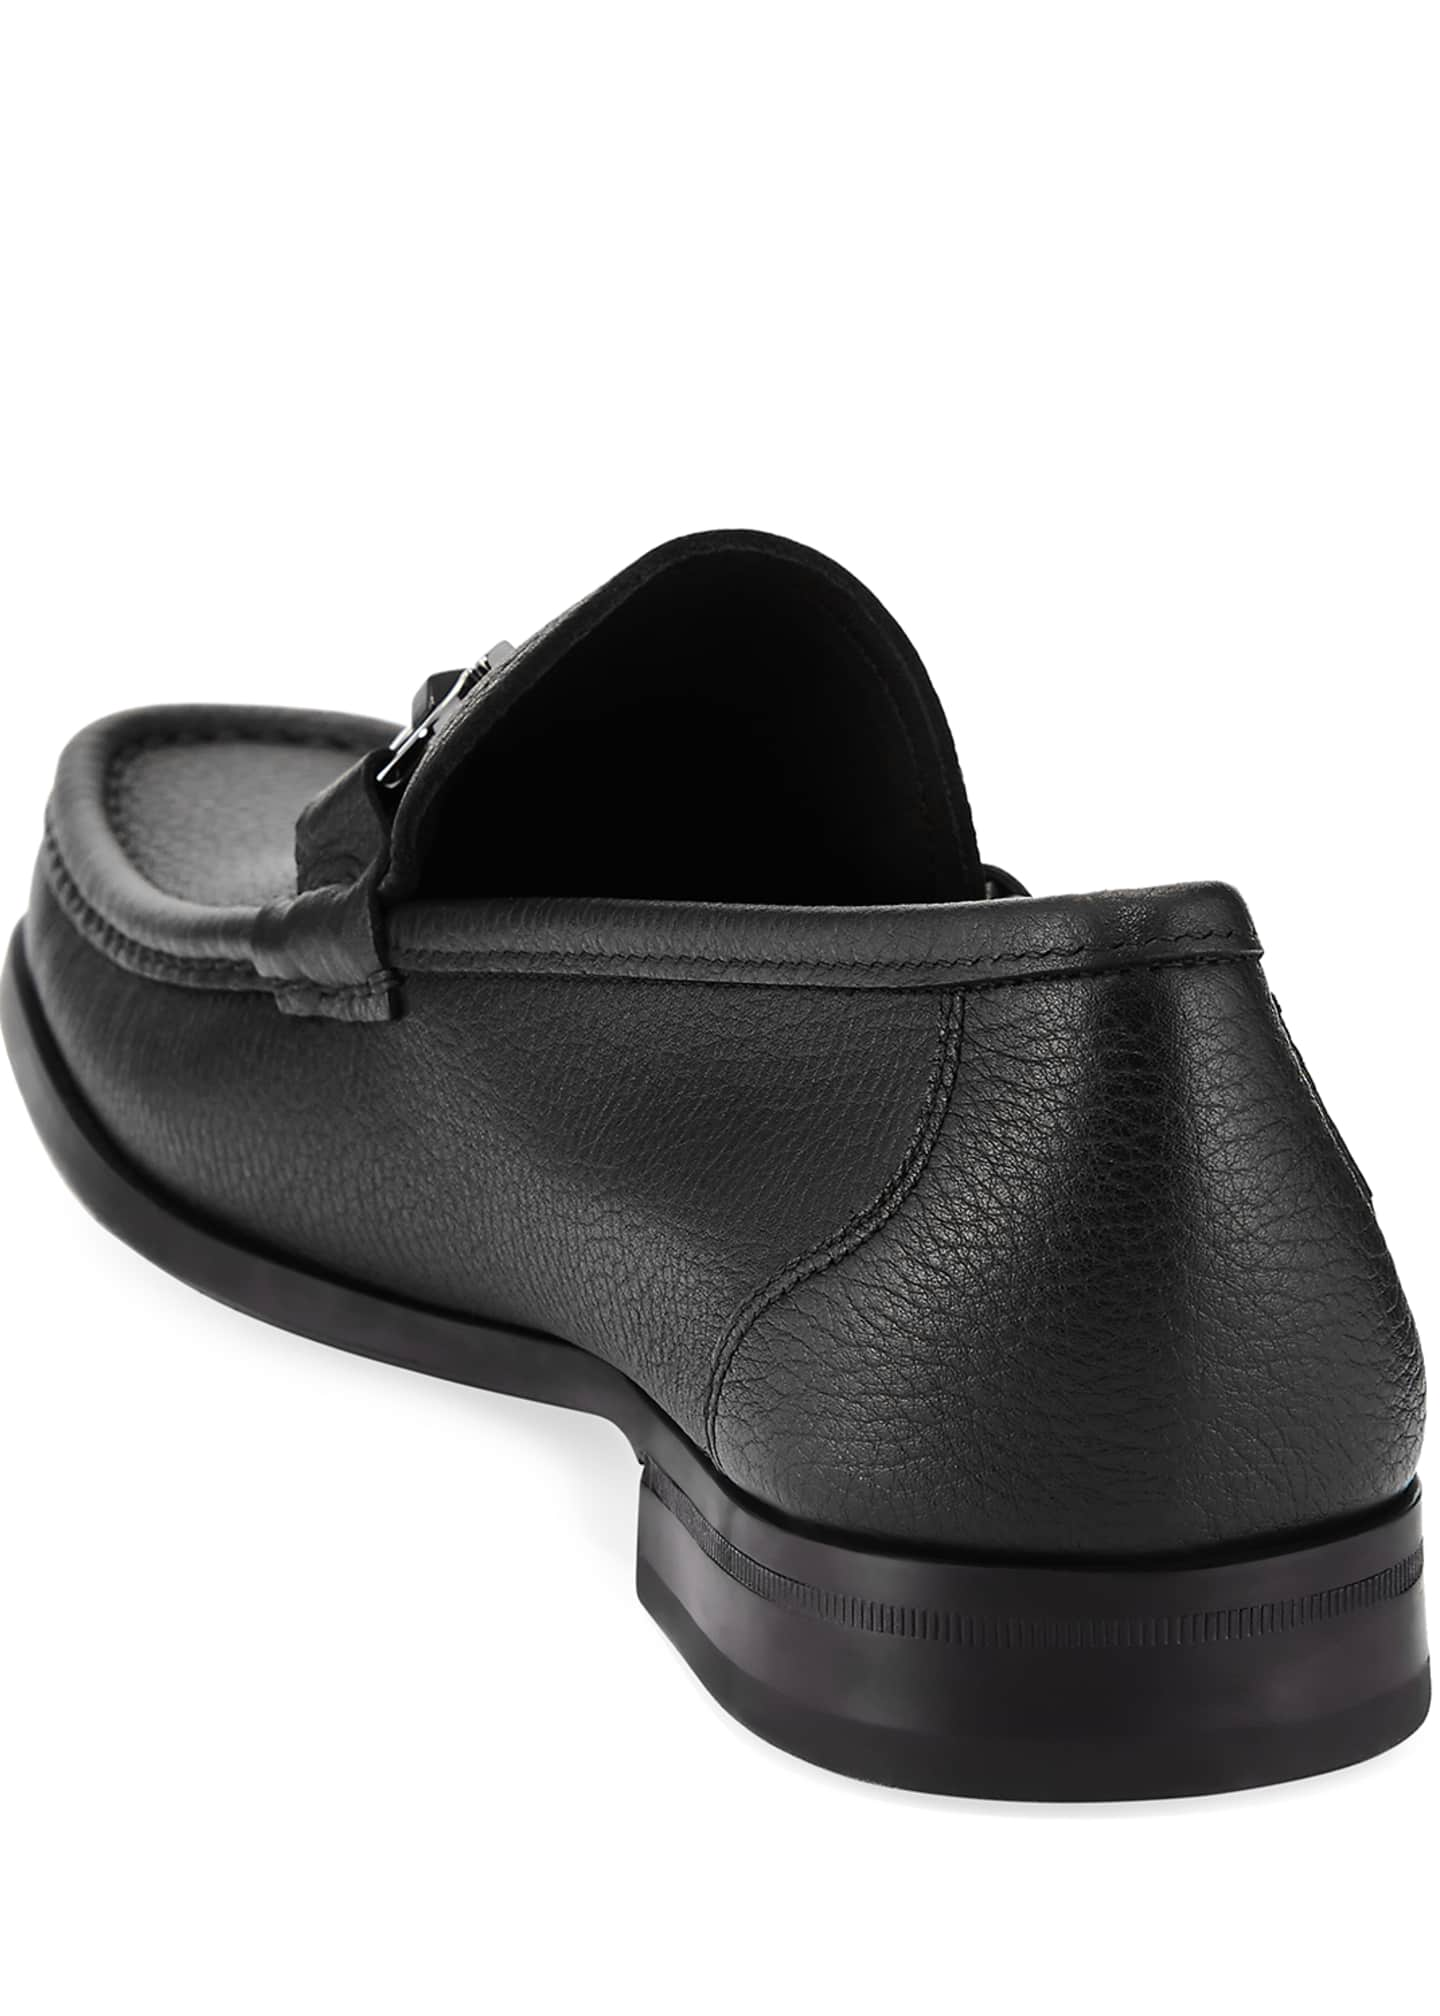 Image 4 of 5: Men's Grained Calf Leather Bit Loafer